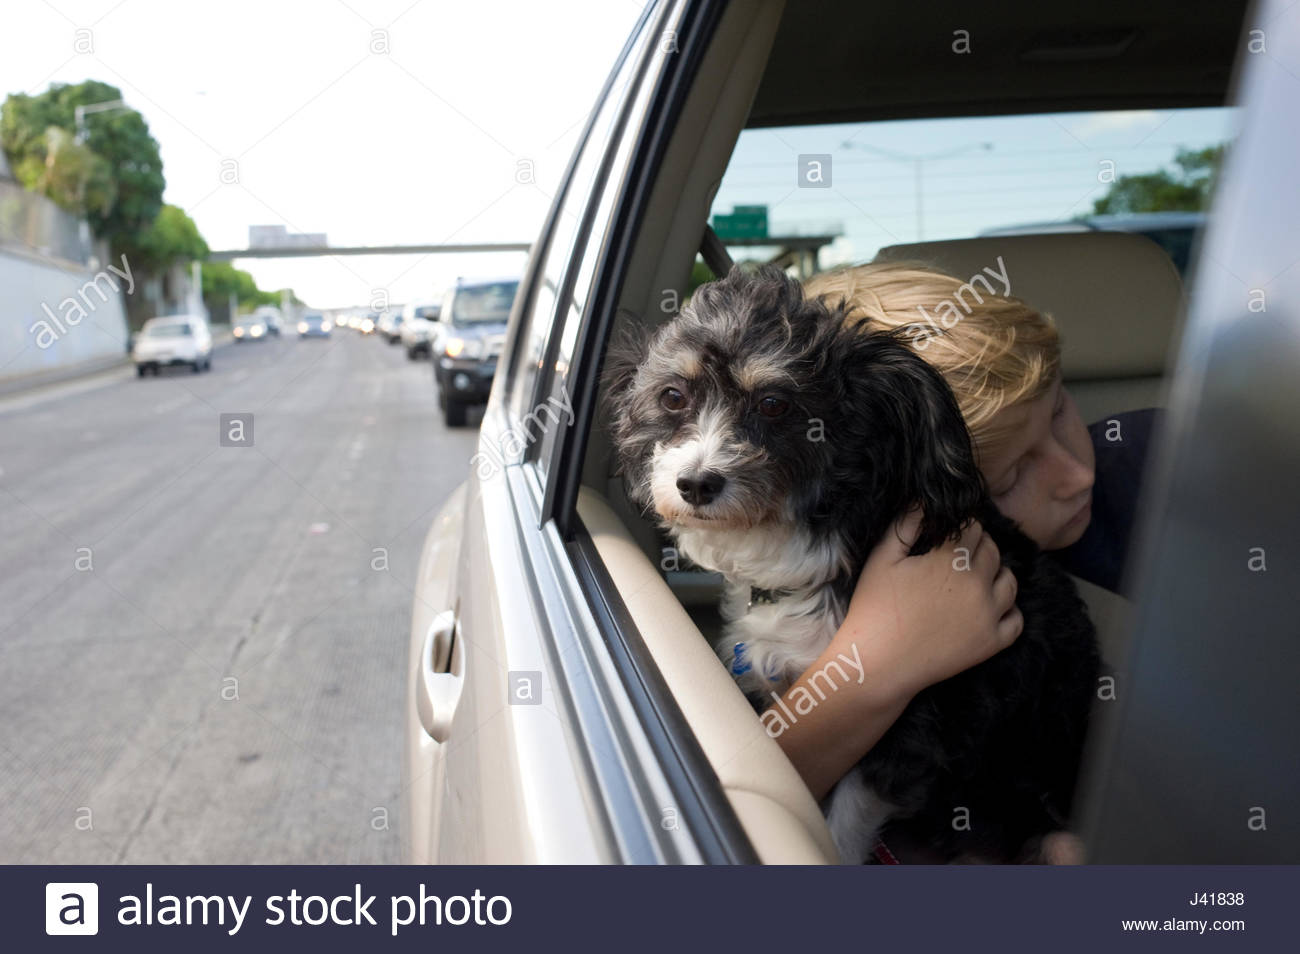 Boy with blonde hair hugging his pet dog that has its head out the window of the family car - Stock Image